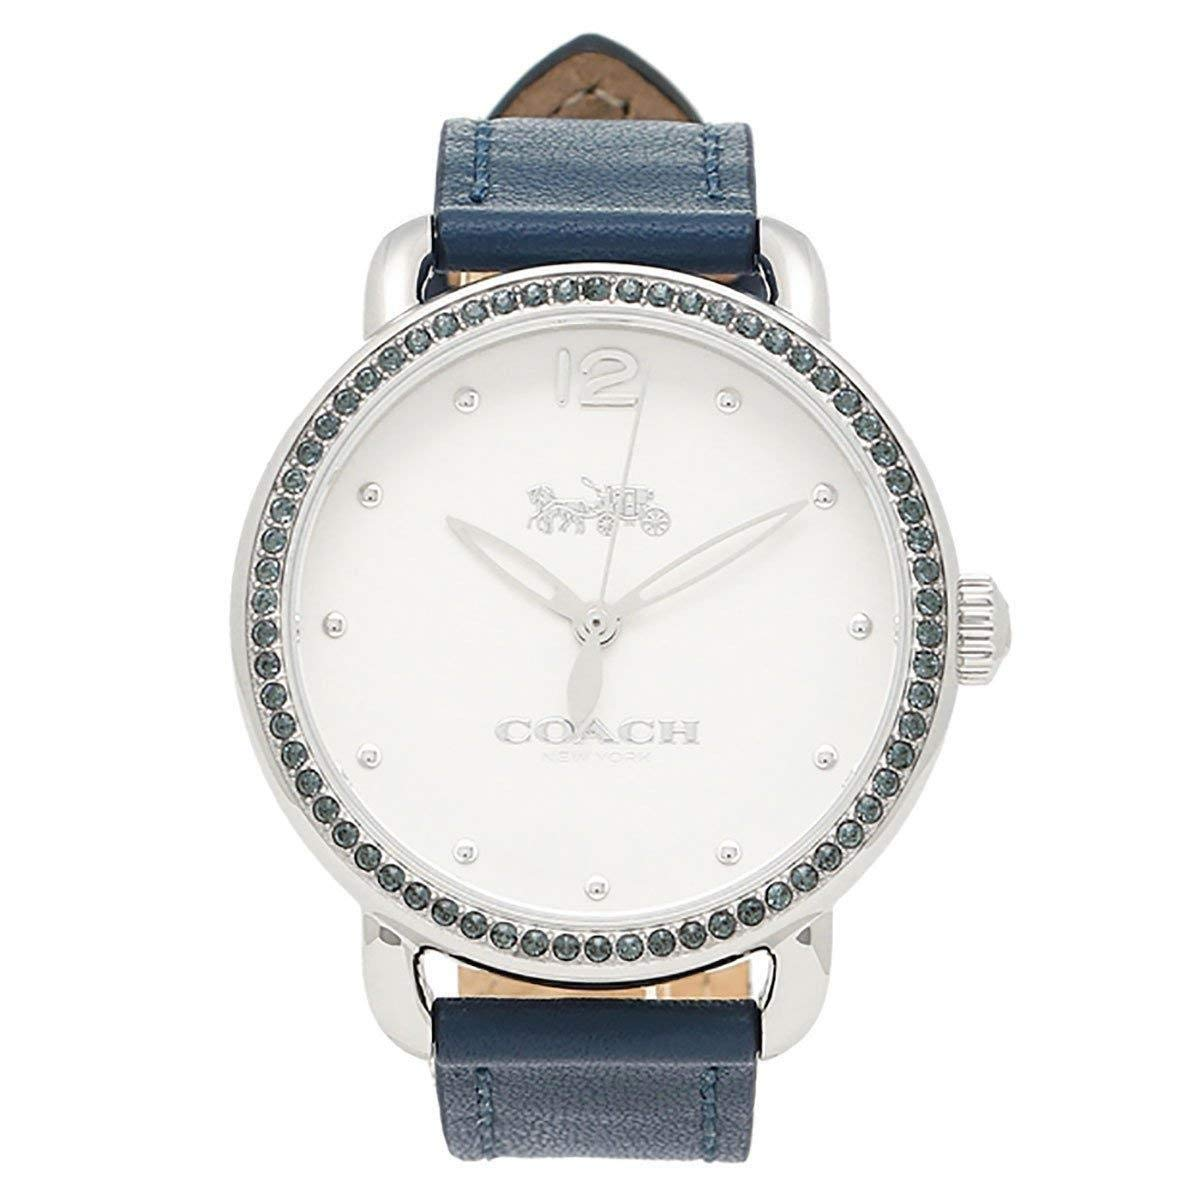 e4409ad63b94 Amazon.com  Coach Women s Delancey Blue Leather Band Steel Case Quartz  White Dial Analog Watch 14502885  Watches